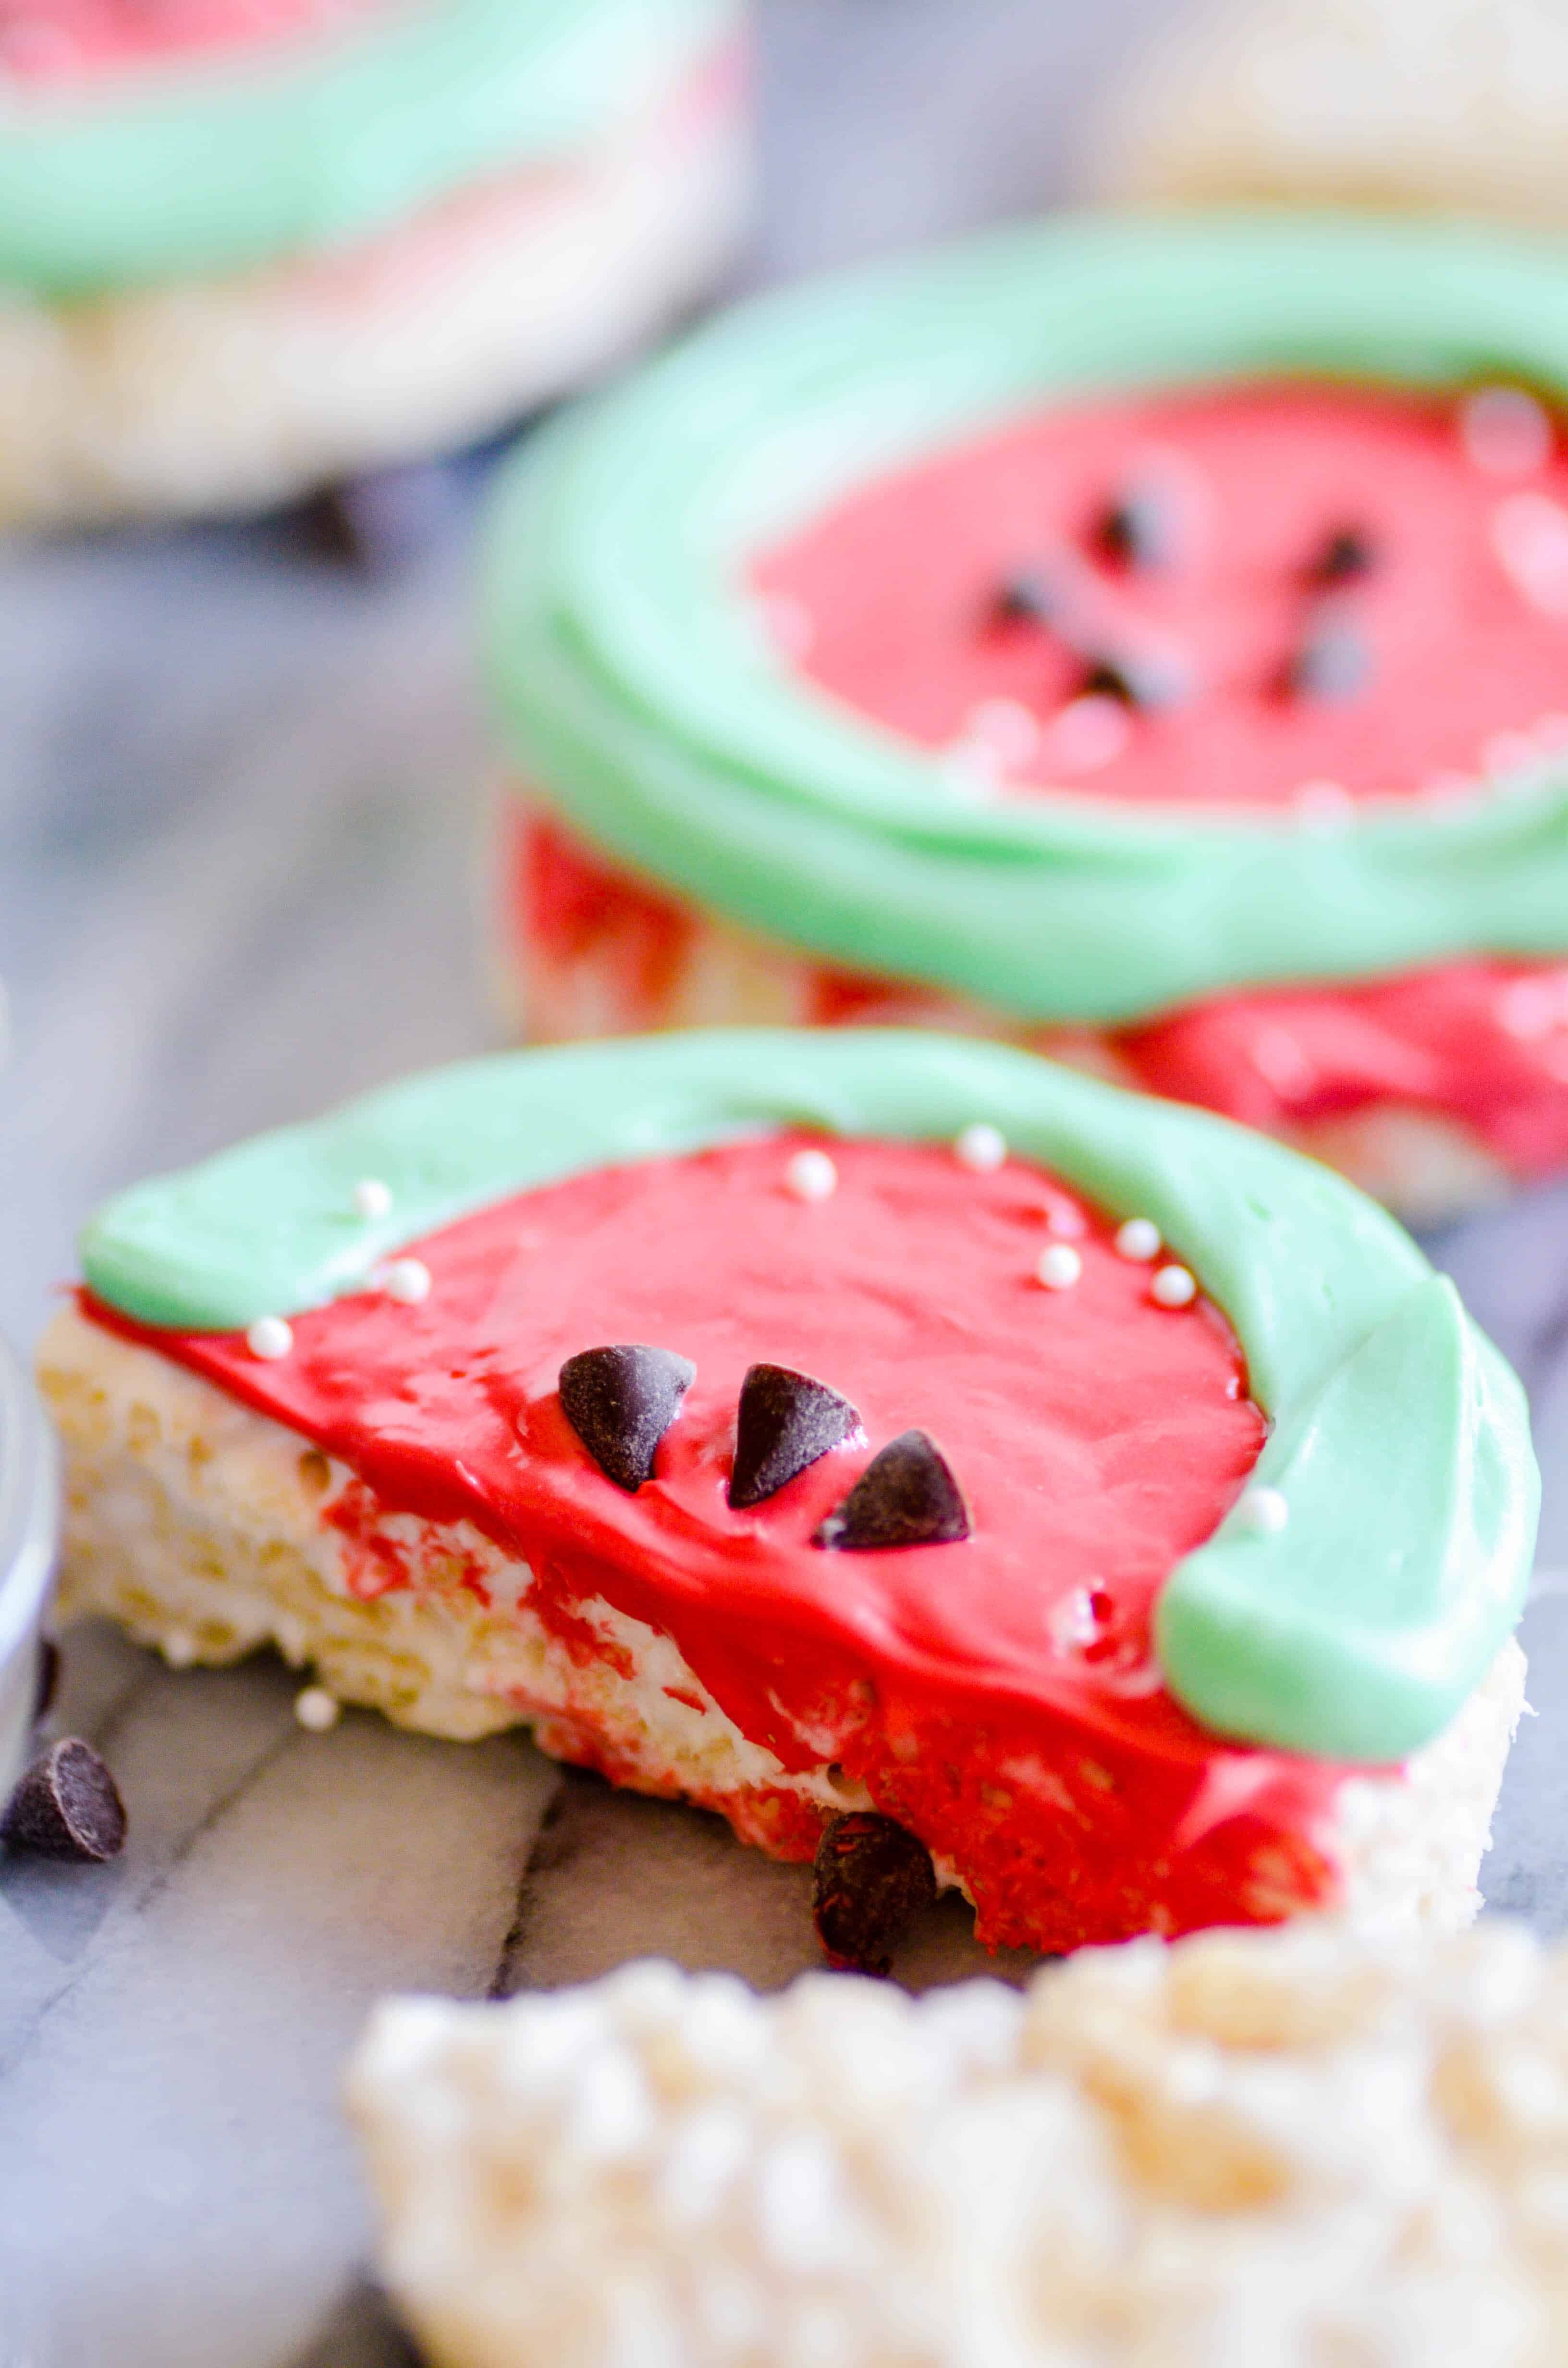 Rice Krispie Treats are extra fun when they look like slices of watermelon!